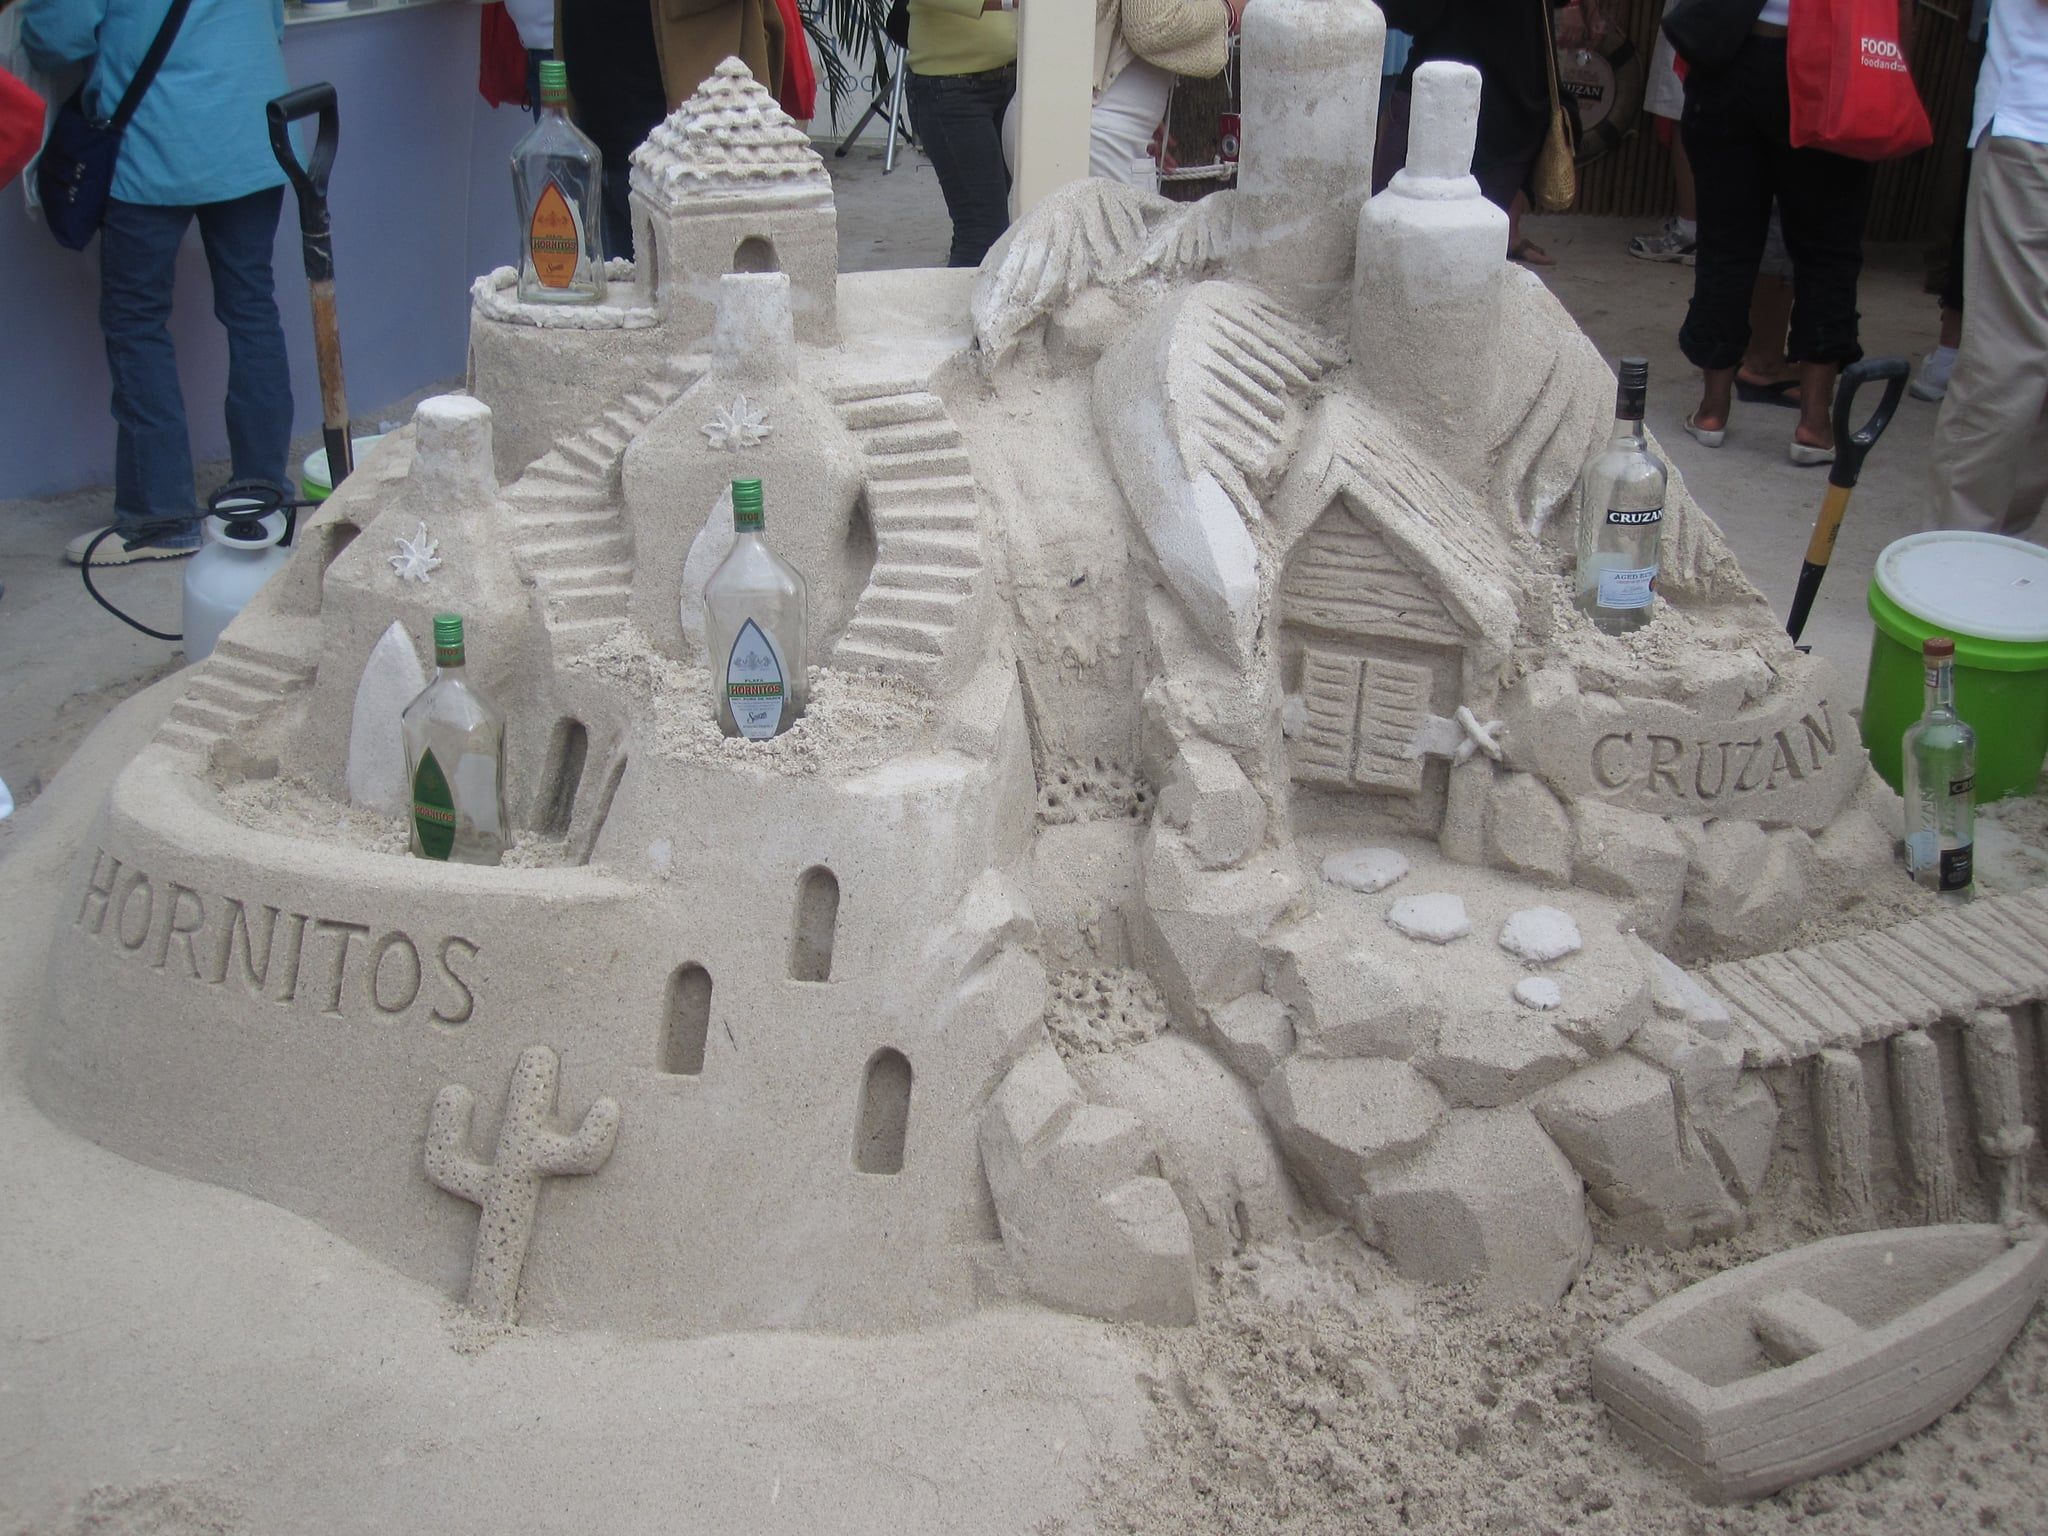 The finished sandcastle!